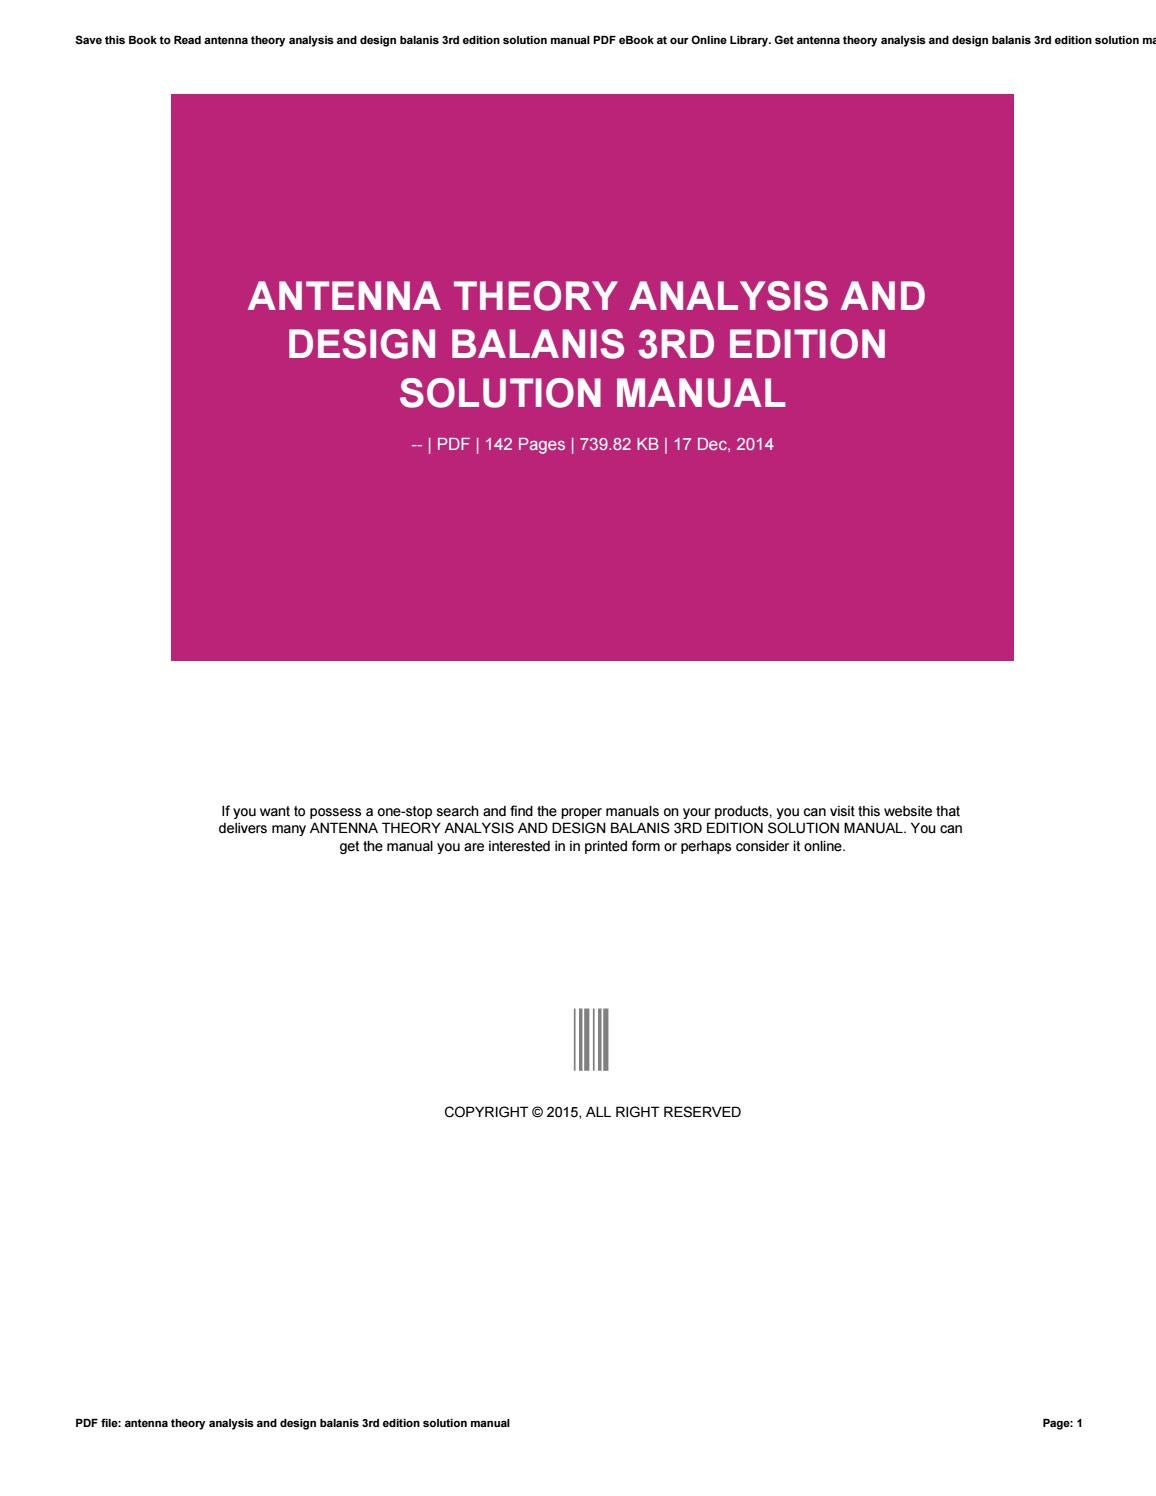 Antenna theory analysis and design balanis 3rd edition solution manual by  rasiman98olsawe - issuu